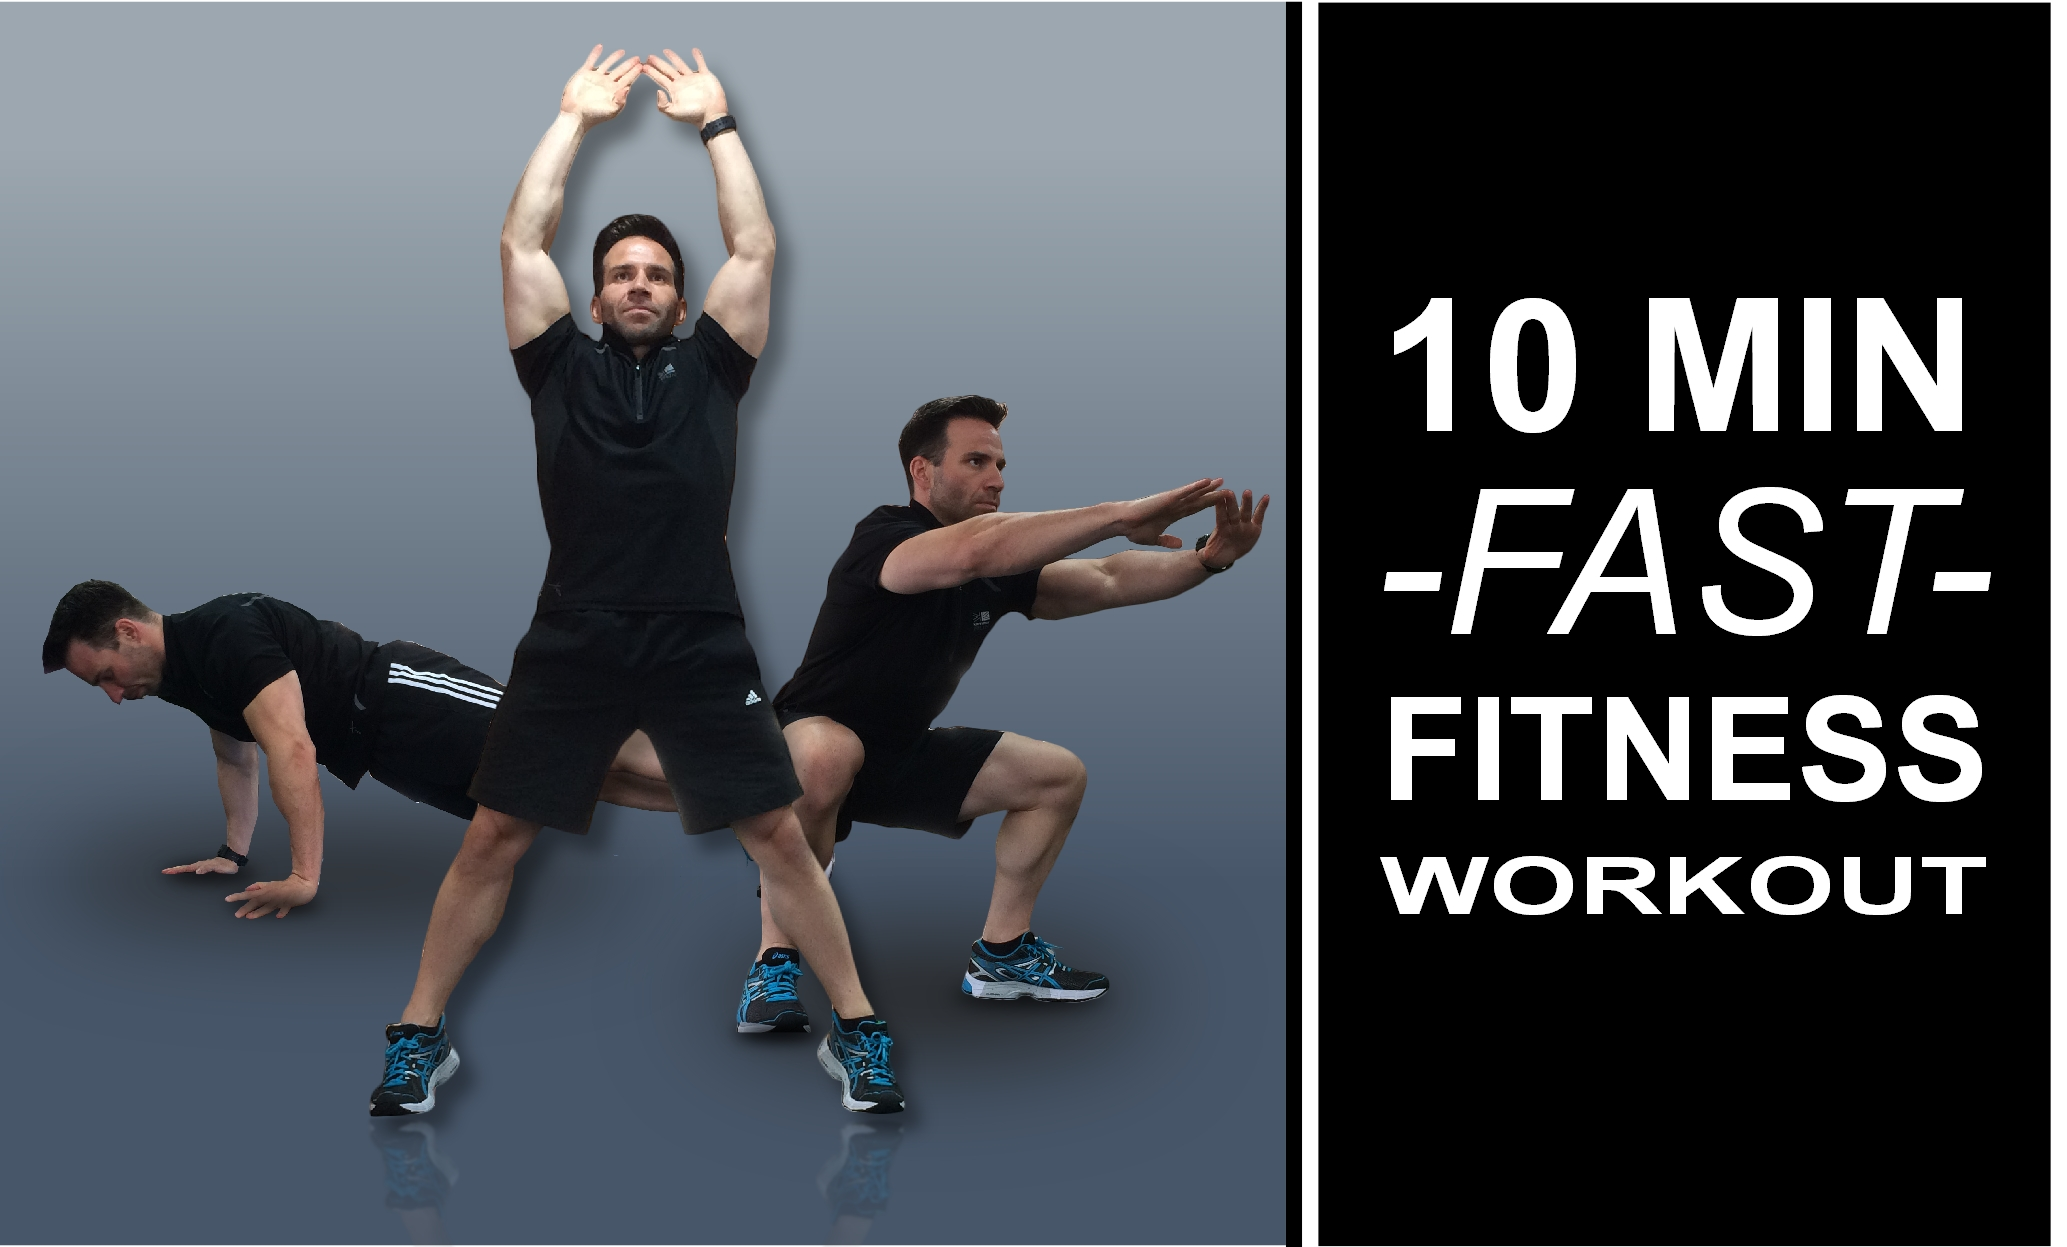 10 min fast fitness workout